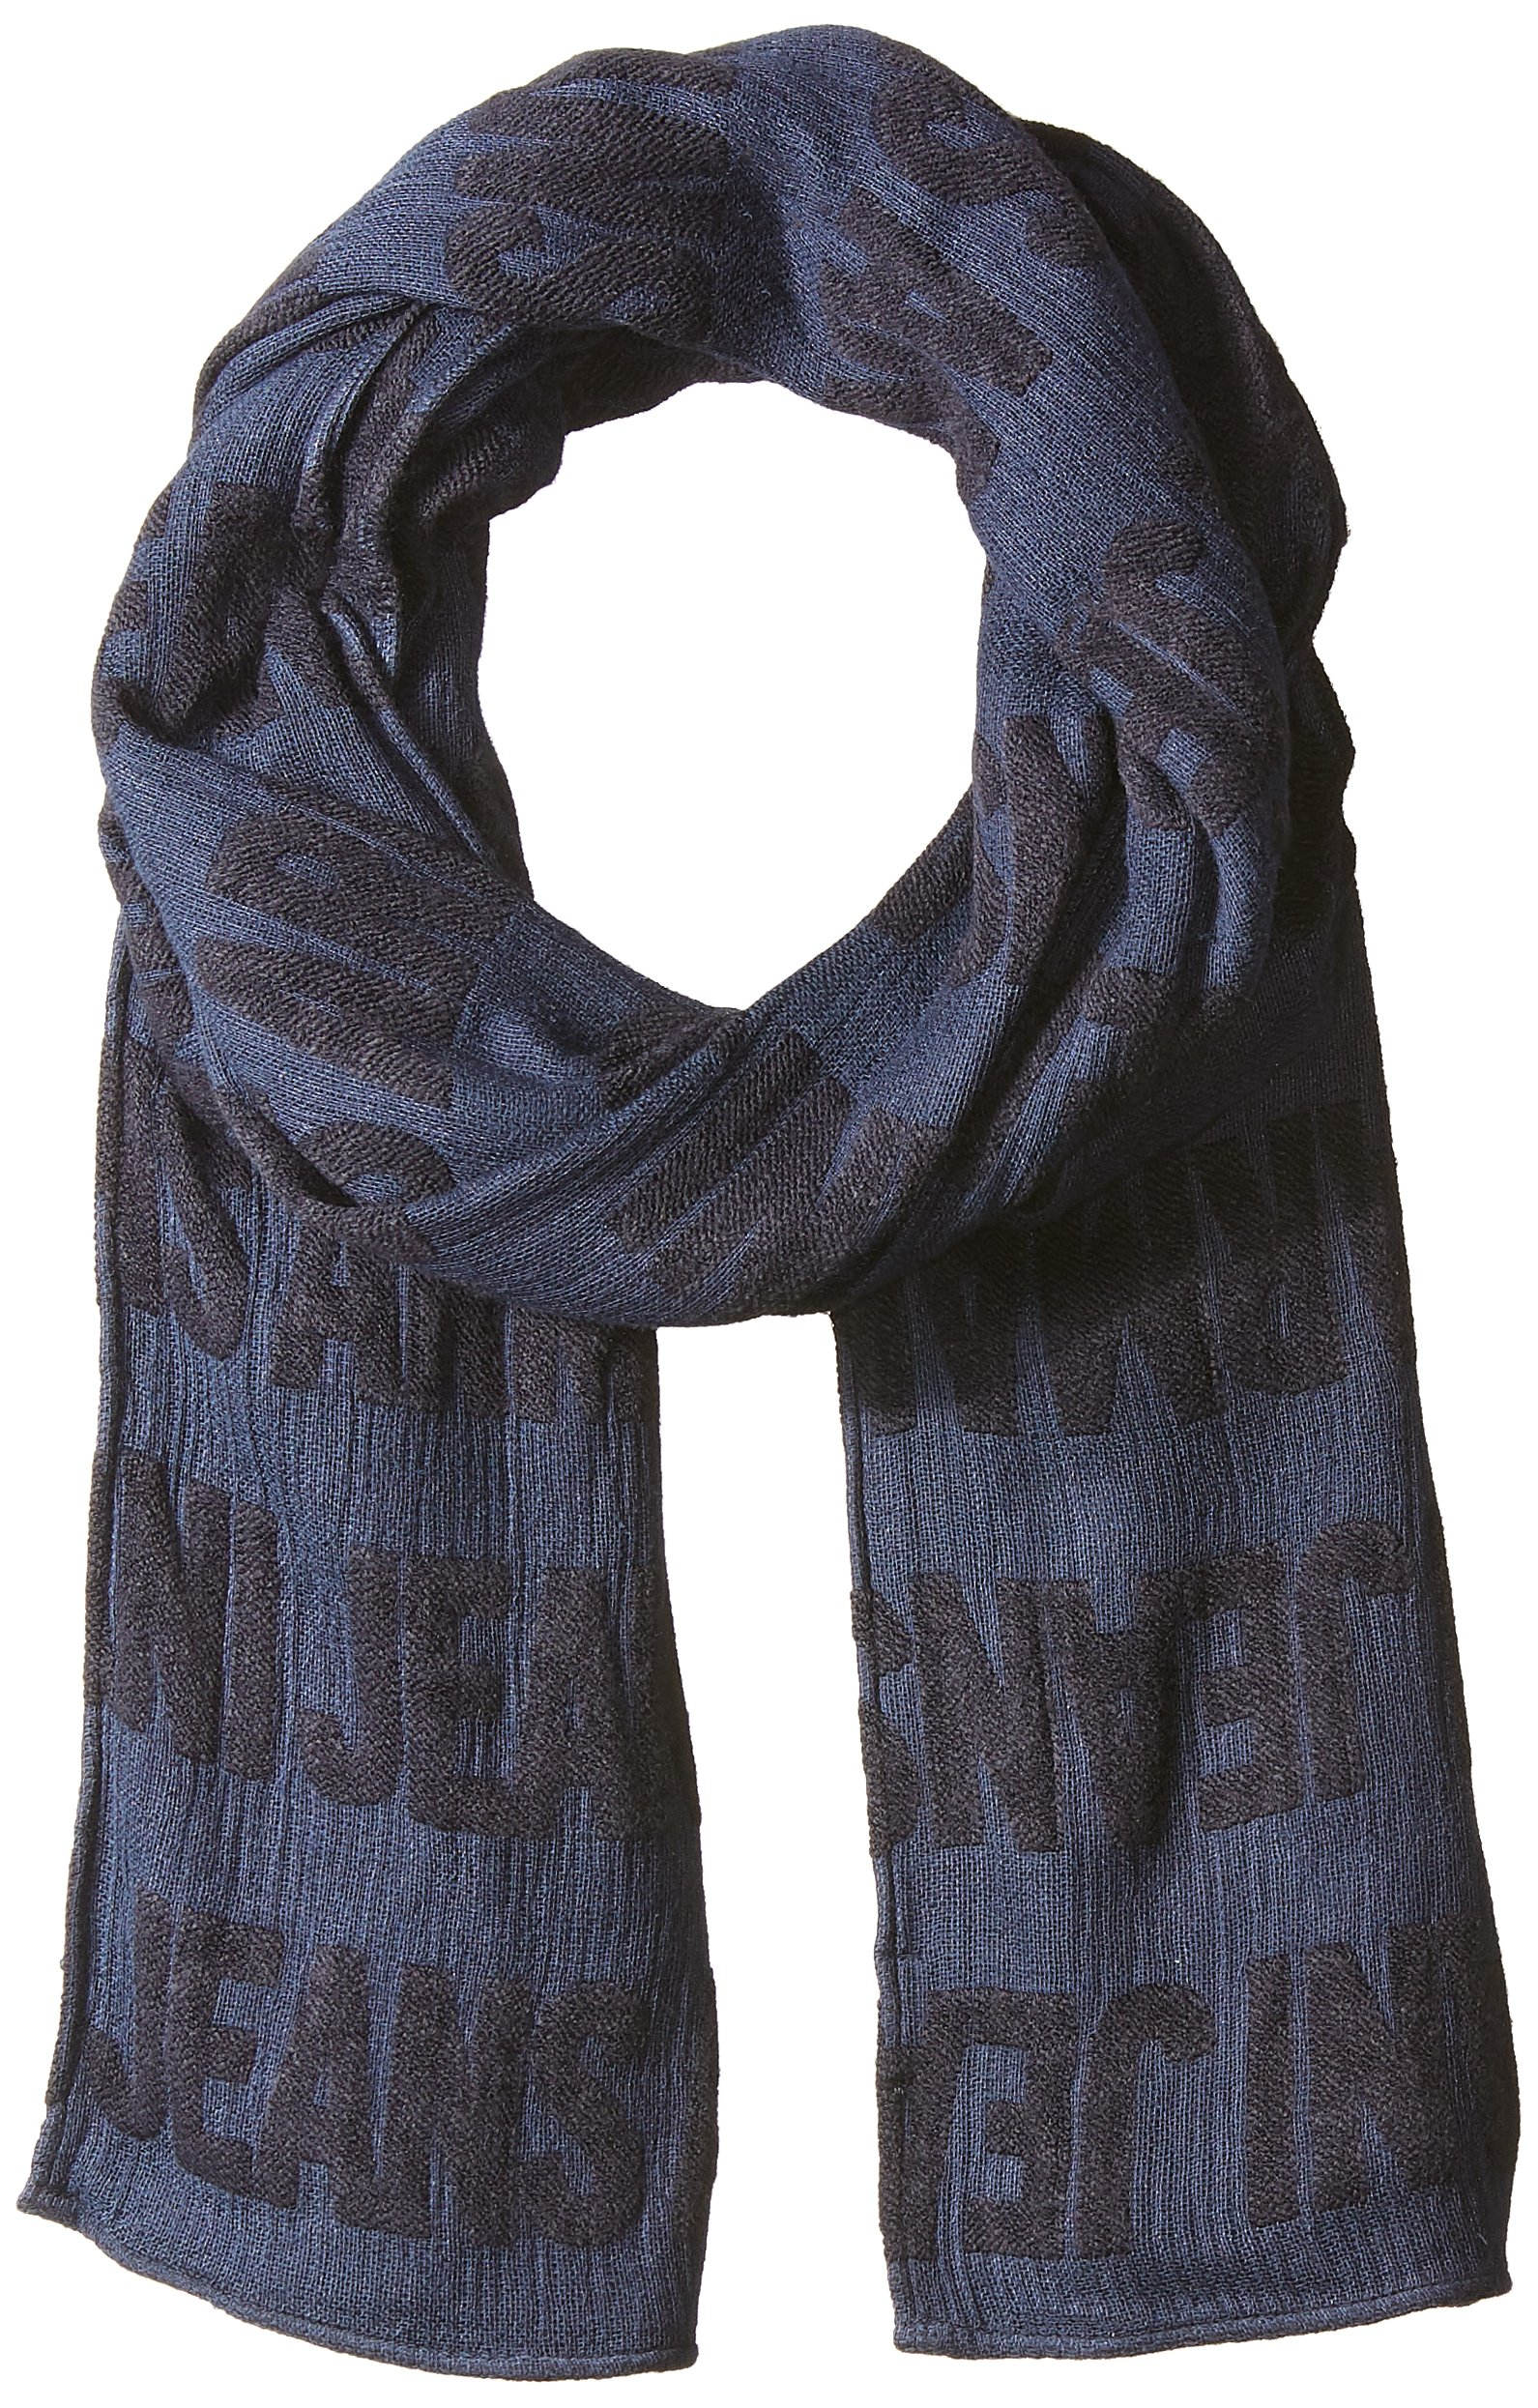 Armani Jeans Men's Two Tone Cotton AND Viscose Fabric Scarf, blue/blue, ONE SIZE